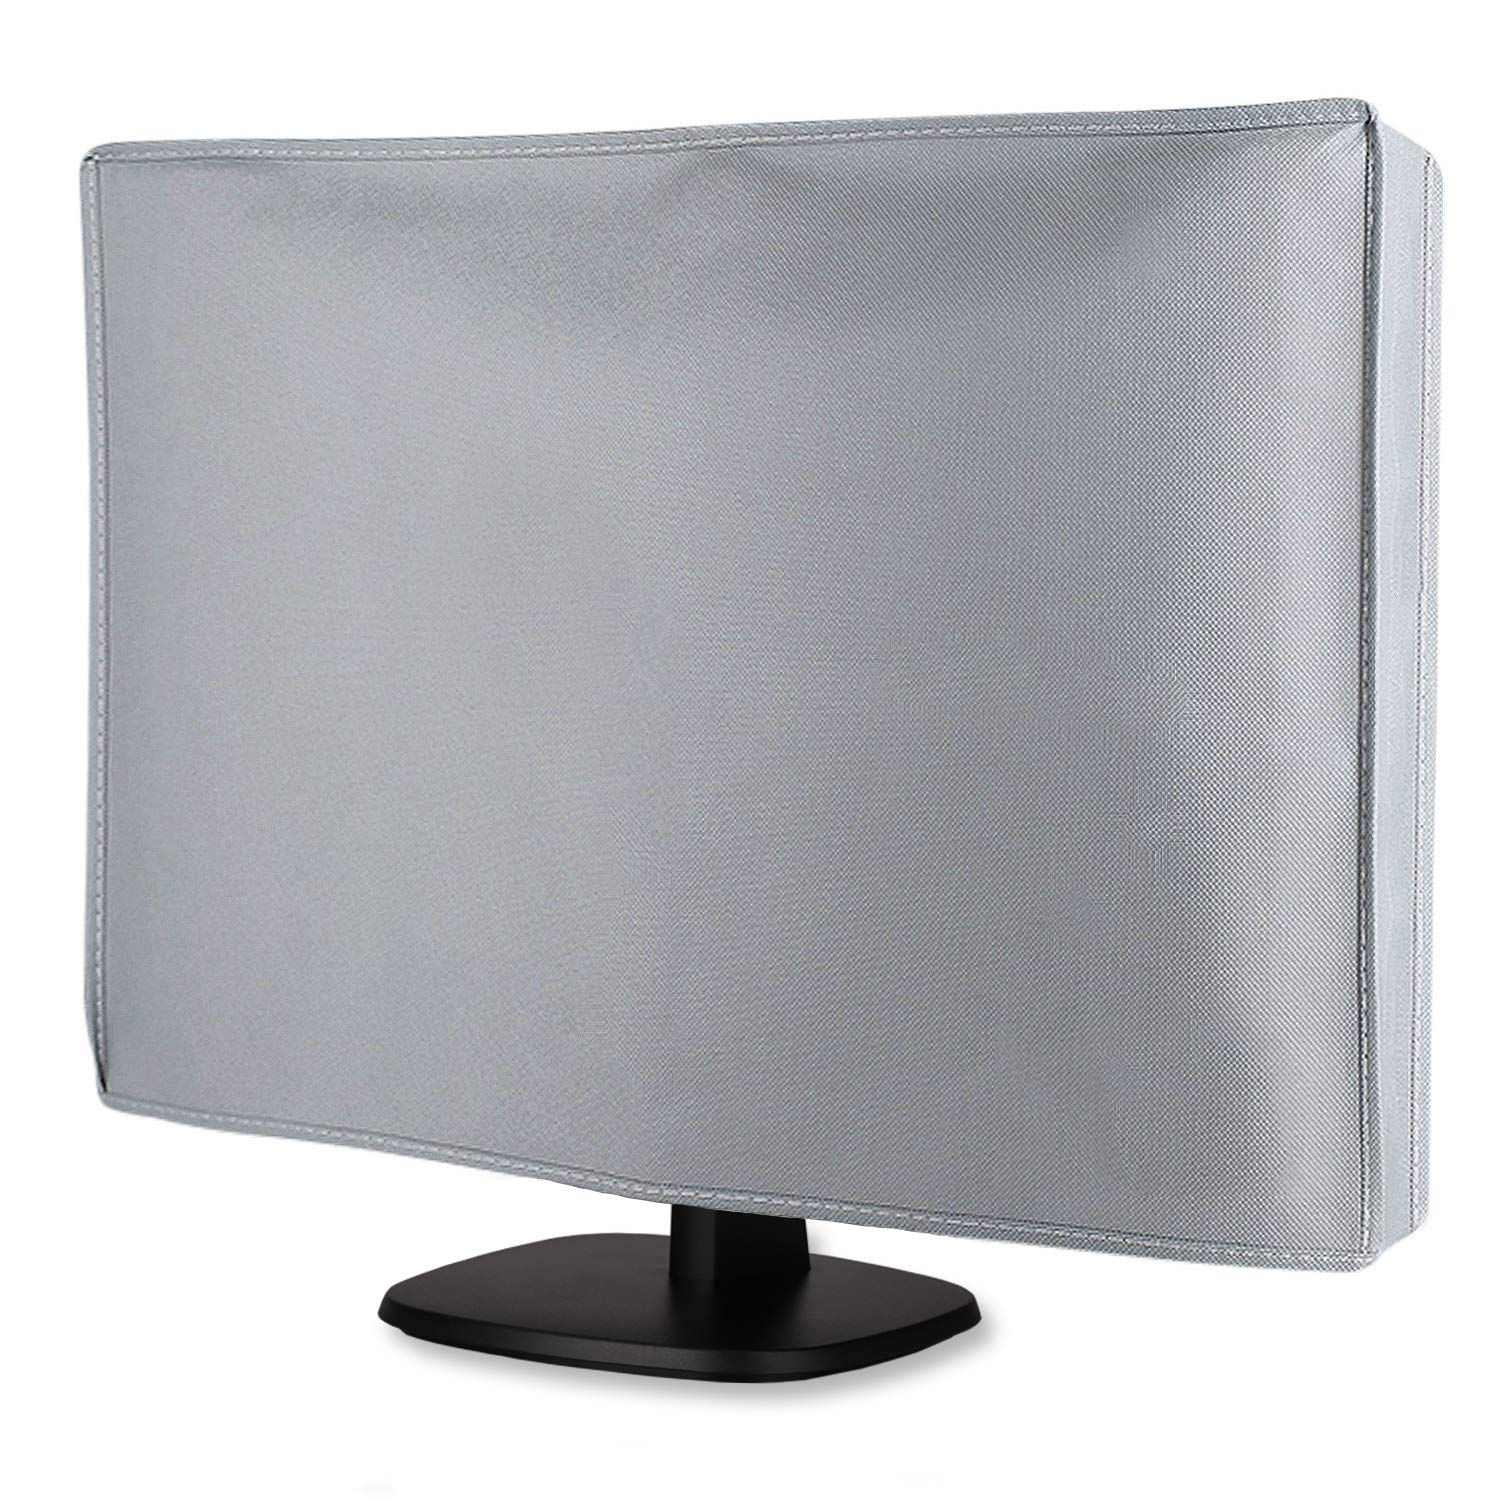 Computer Flat Screen Monitor Cover, Nonwoven Fabric Dust-Proof Full Body Sleeve for 23 to 25 inches LCD/LED Non-Curved Monitor 24 x 18 x 3 inches (L x H x W)